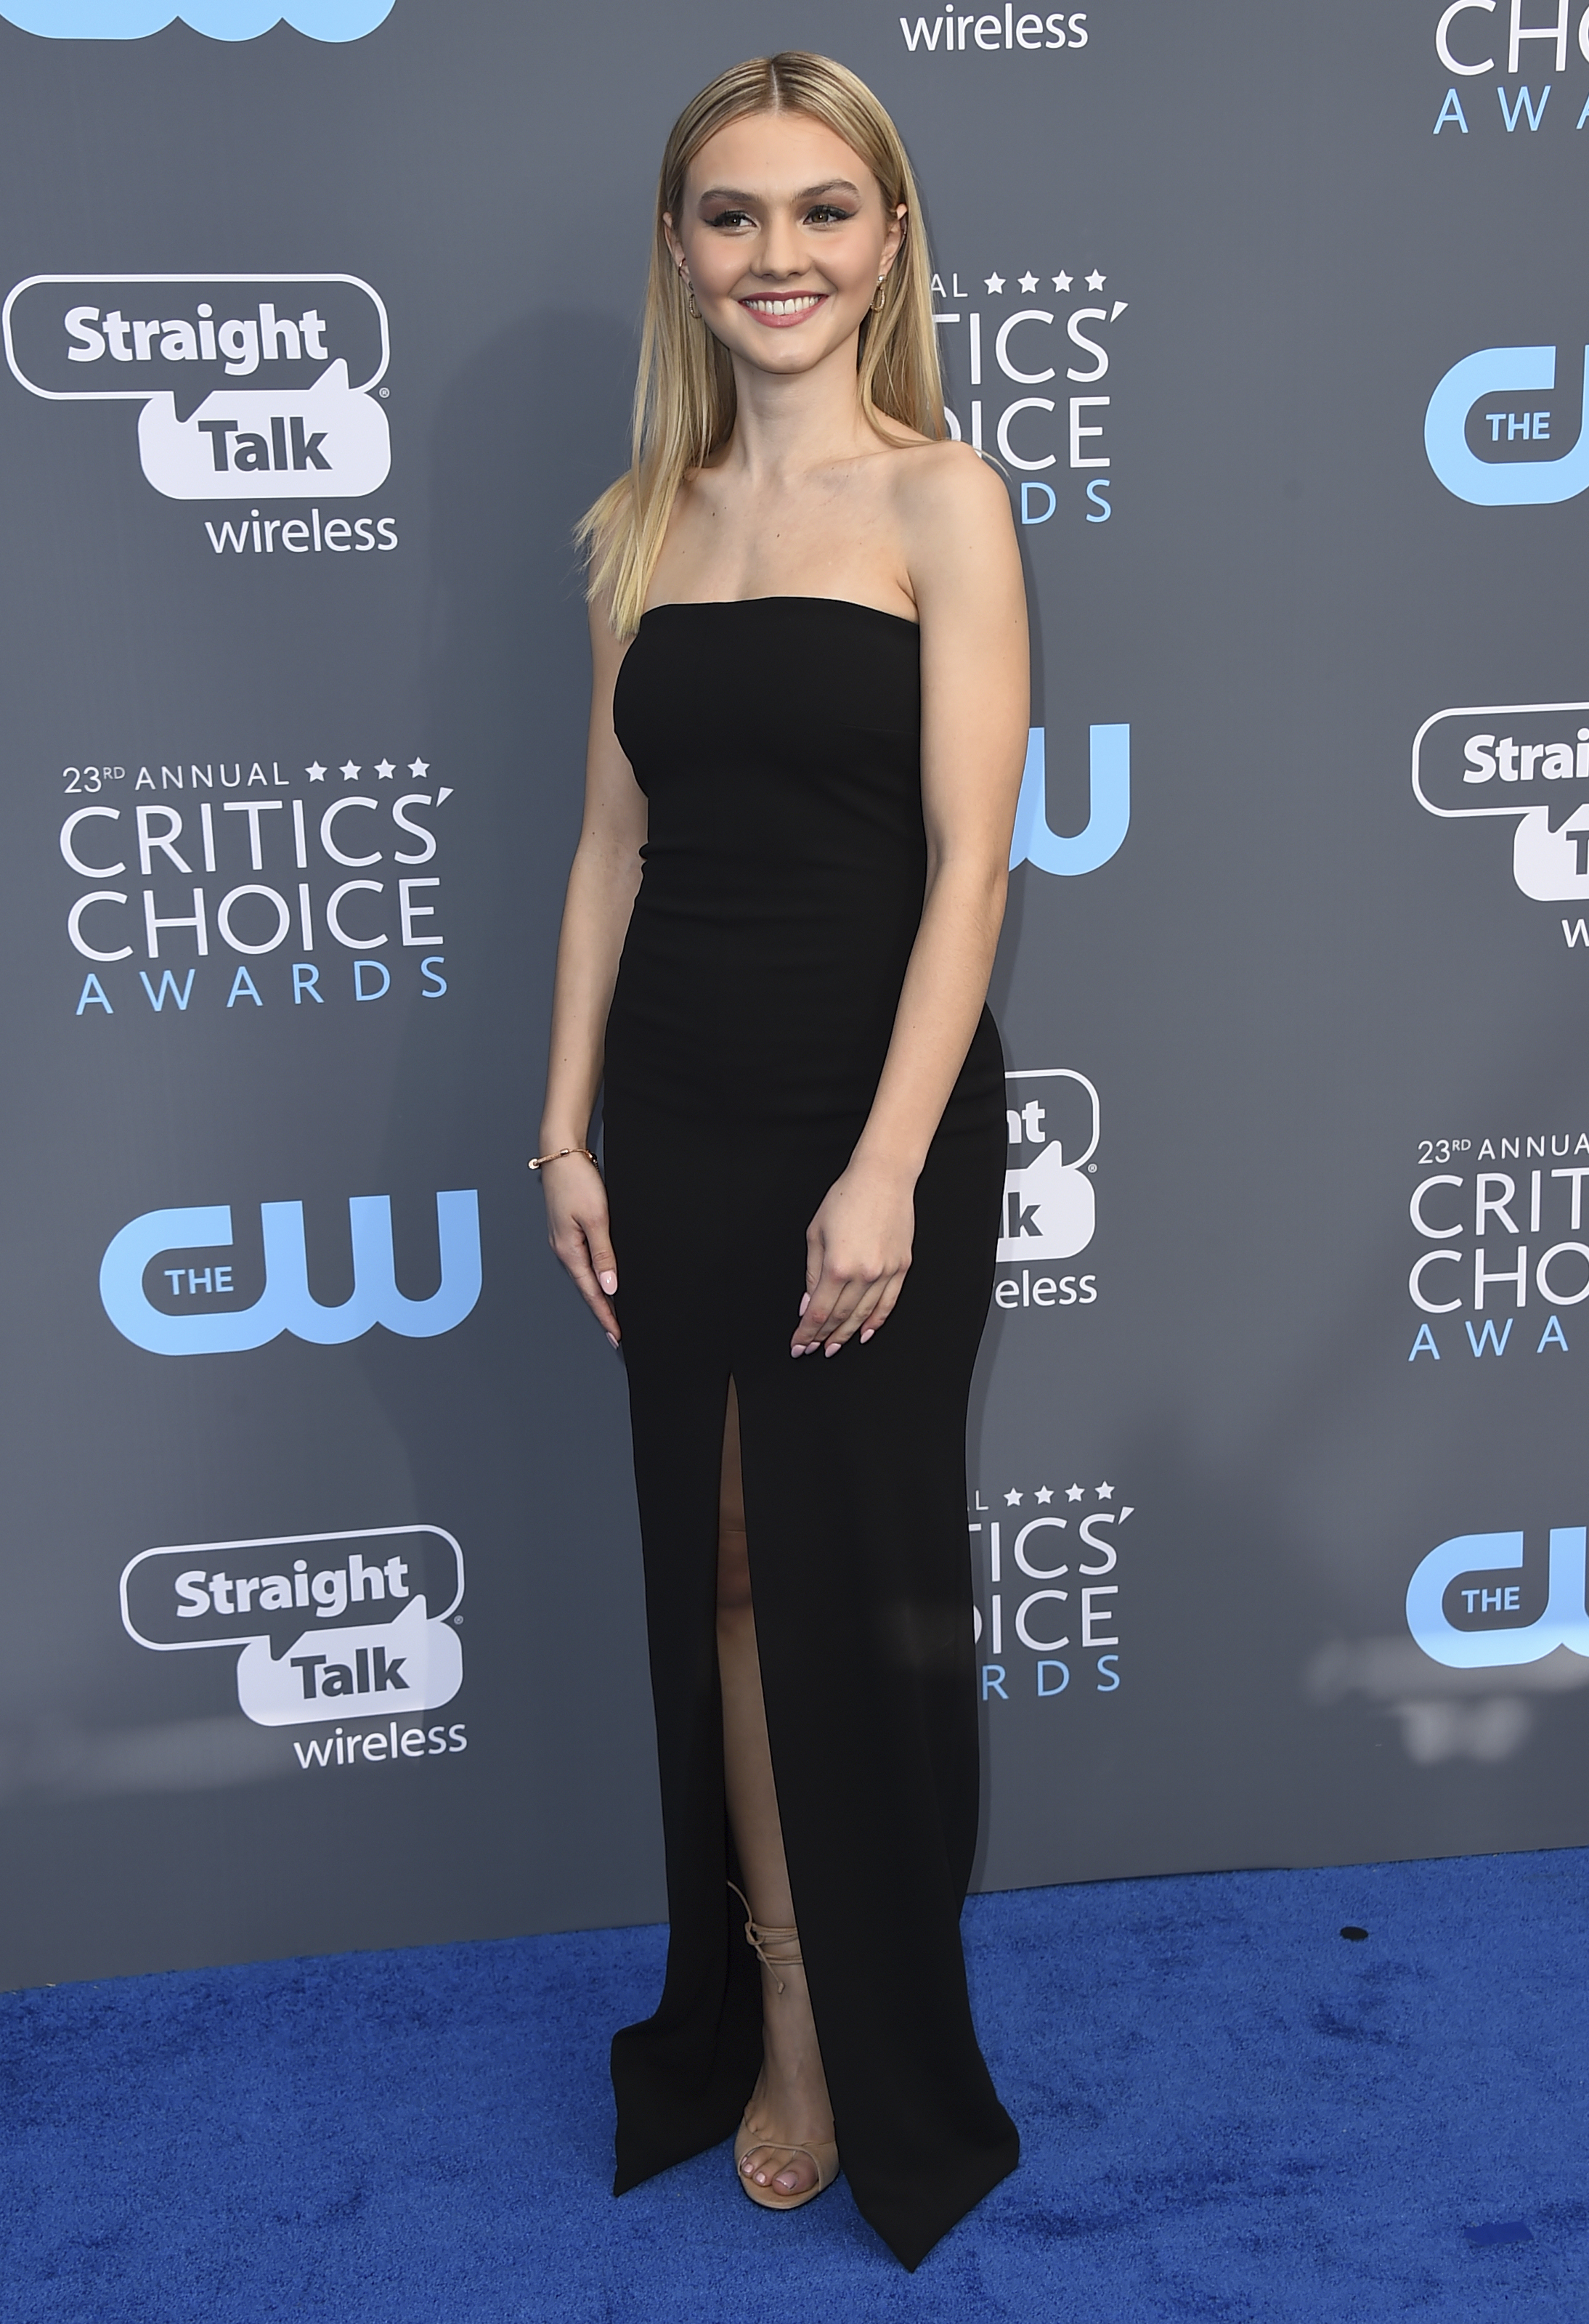 <div class='meta'><div class='origin-logo' data-origin='AP'></div><span class='caption-text' data-credit='Jordan Strauss/Invision/AP'>Alana Boden arrives at the 23rd annual Critics' Choice Awards at the Barker Hangar on Thursday, Jan. 11, 2018, in Santa Monica, Calif.</span></div>